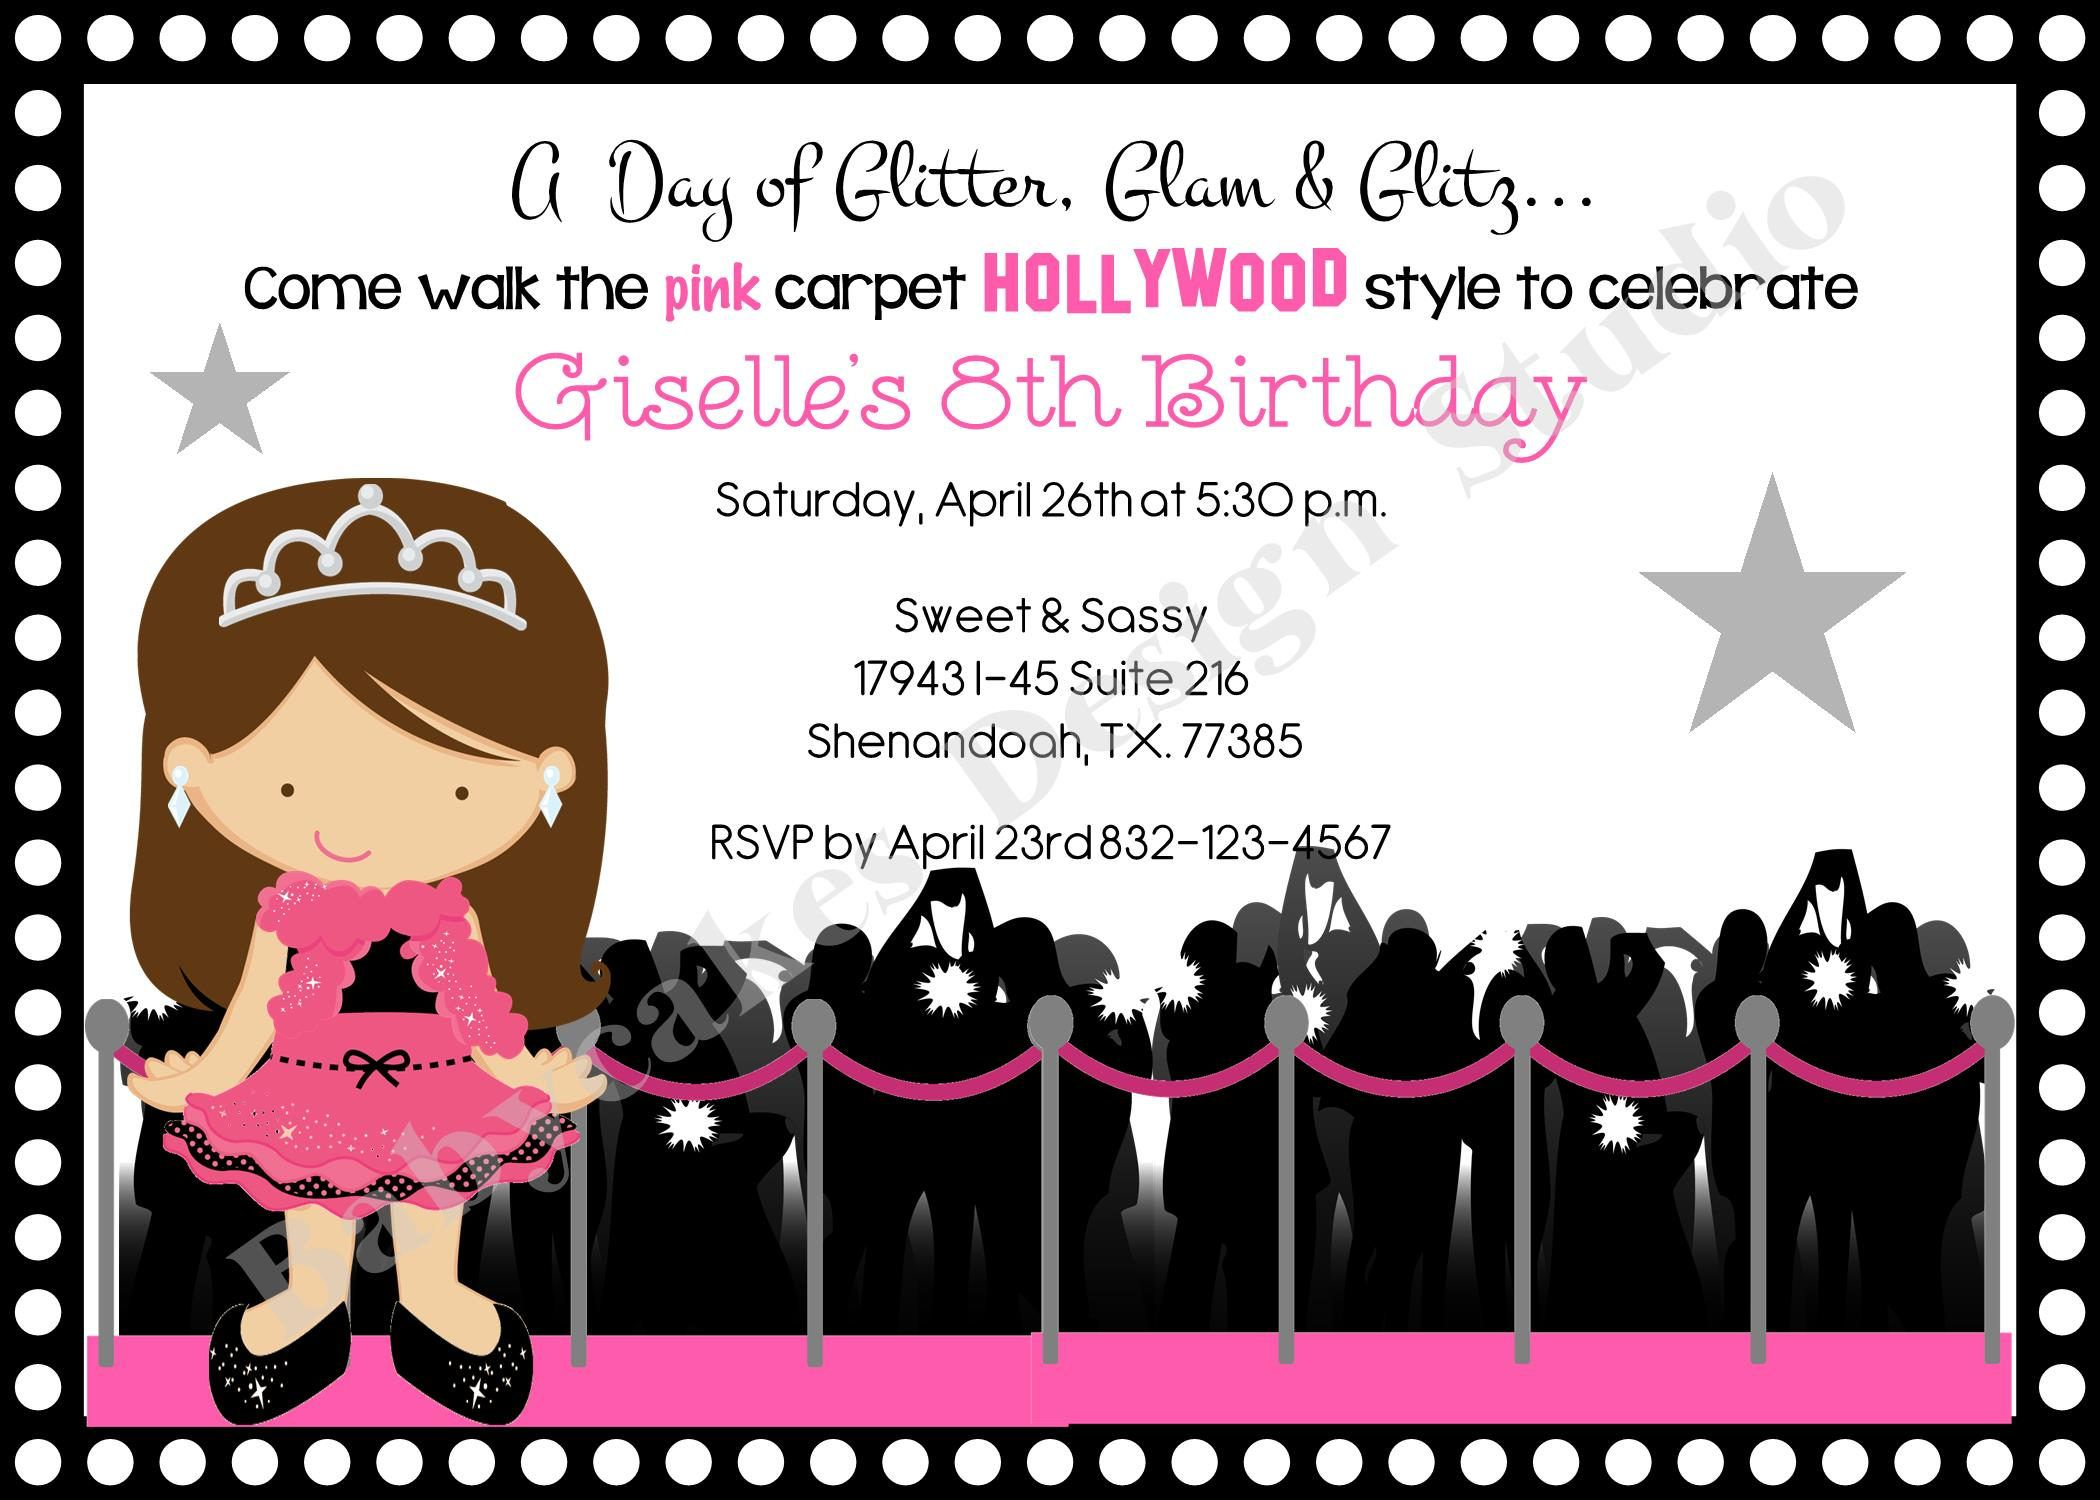 Hollywood diva birthday party invitation invite hollywood party ...